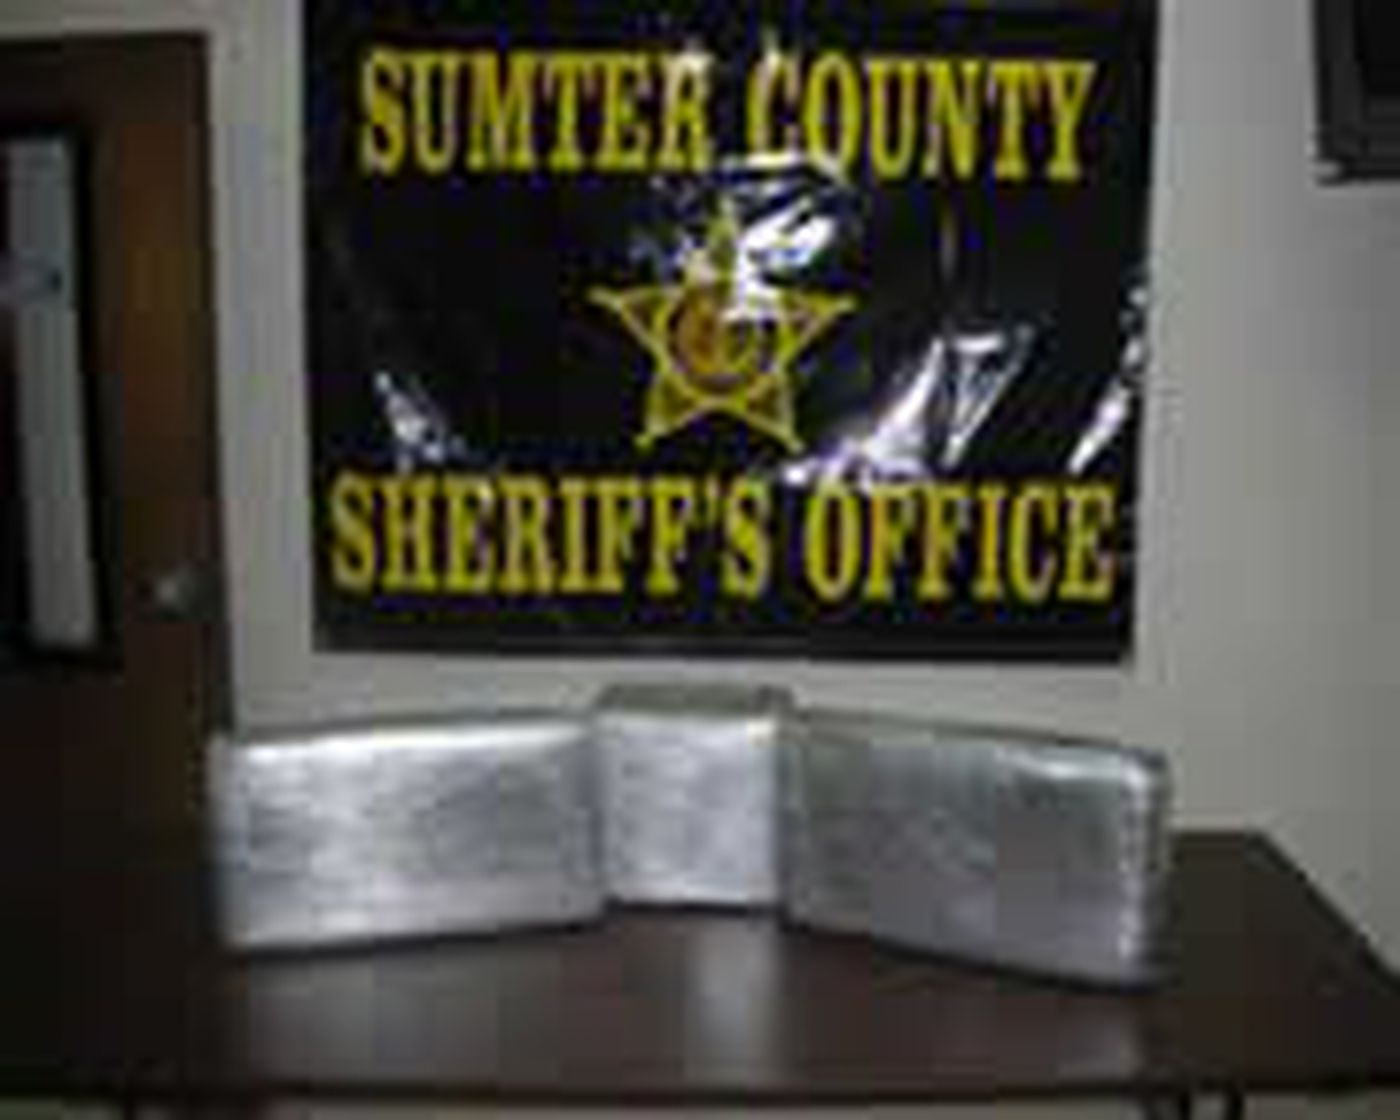 Traffic stop in Sumter Co  leads to arrest, seizure of 33lbs